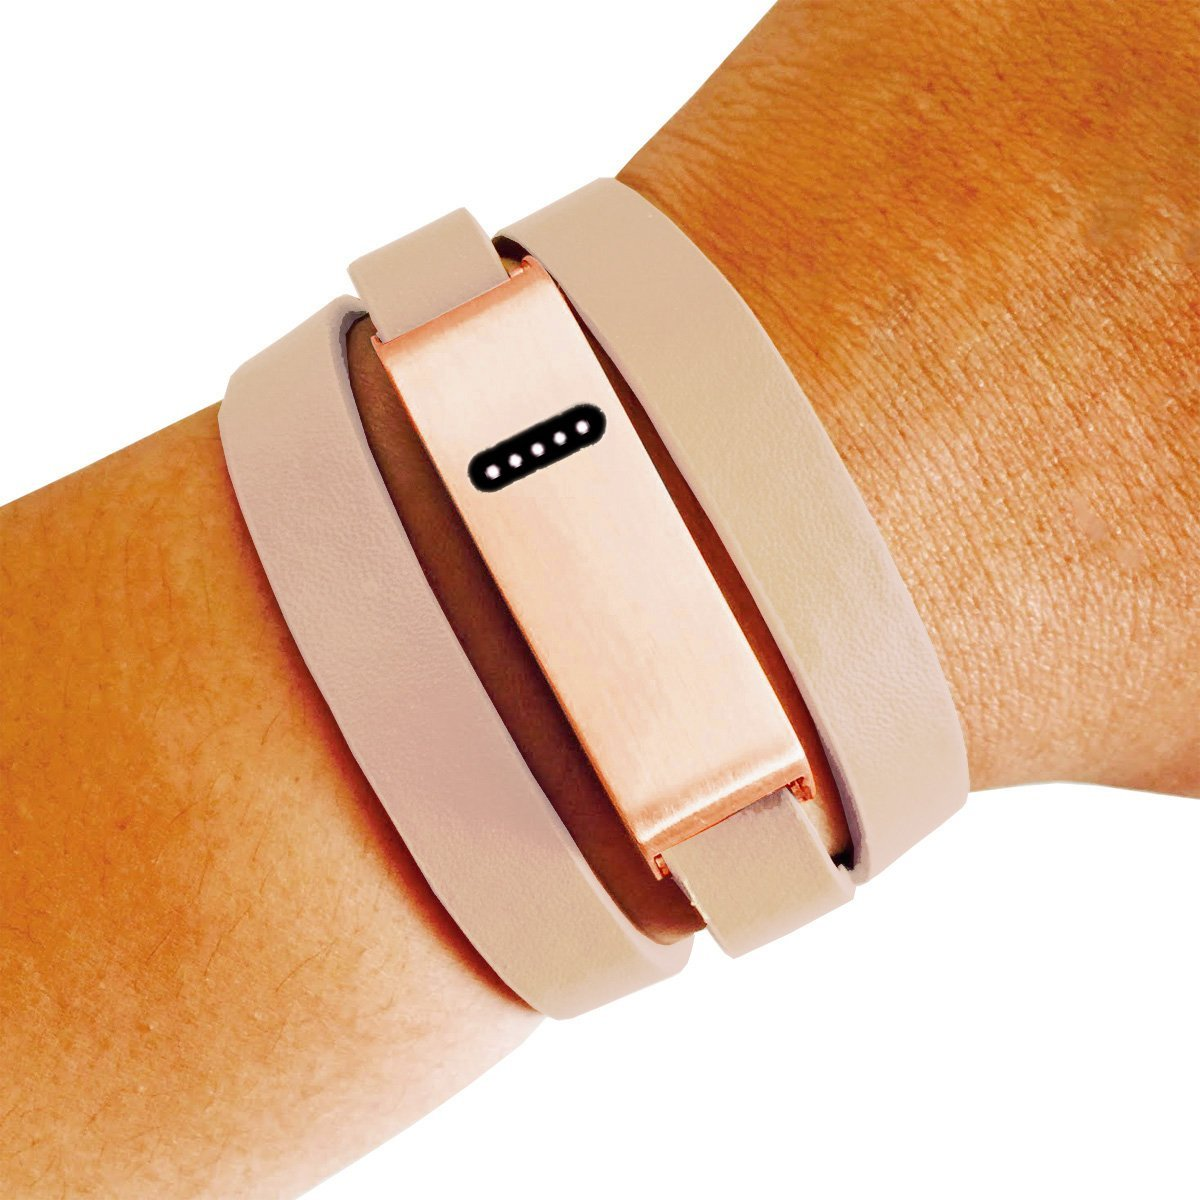 Fitbitブレスレットfor Fitbit Flexフィットネストラッカー M-L|Beige – Rose The Kate Insight Brushed Gold Metal andプレミアムVeganまたは本革バックルFitbitブレスレット B01EO036PW Beige and Rose Gold M-L M-L|Beige and Rose Gold, DIYのドグーストア:00d5b3cb --- malebeauty.xyz